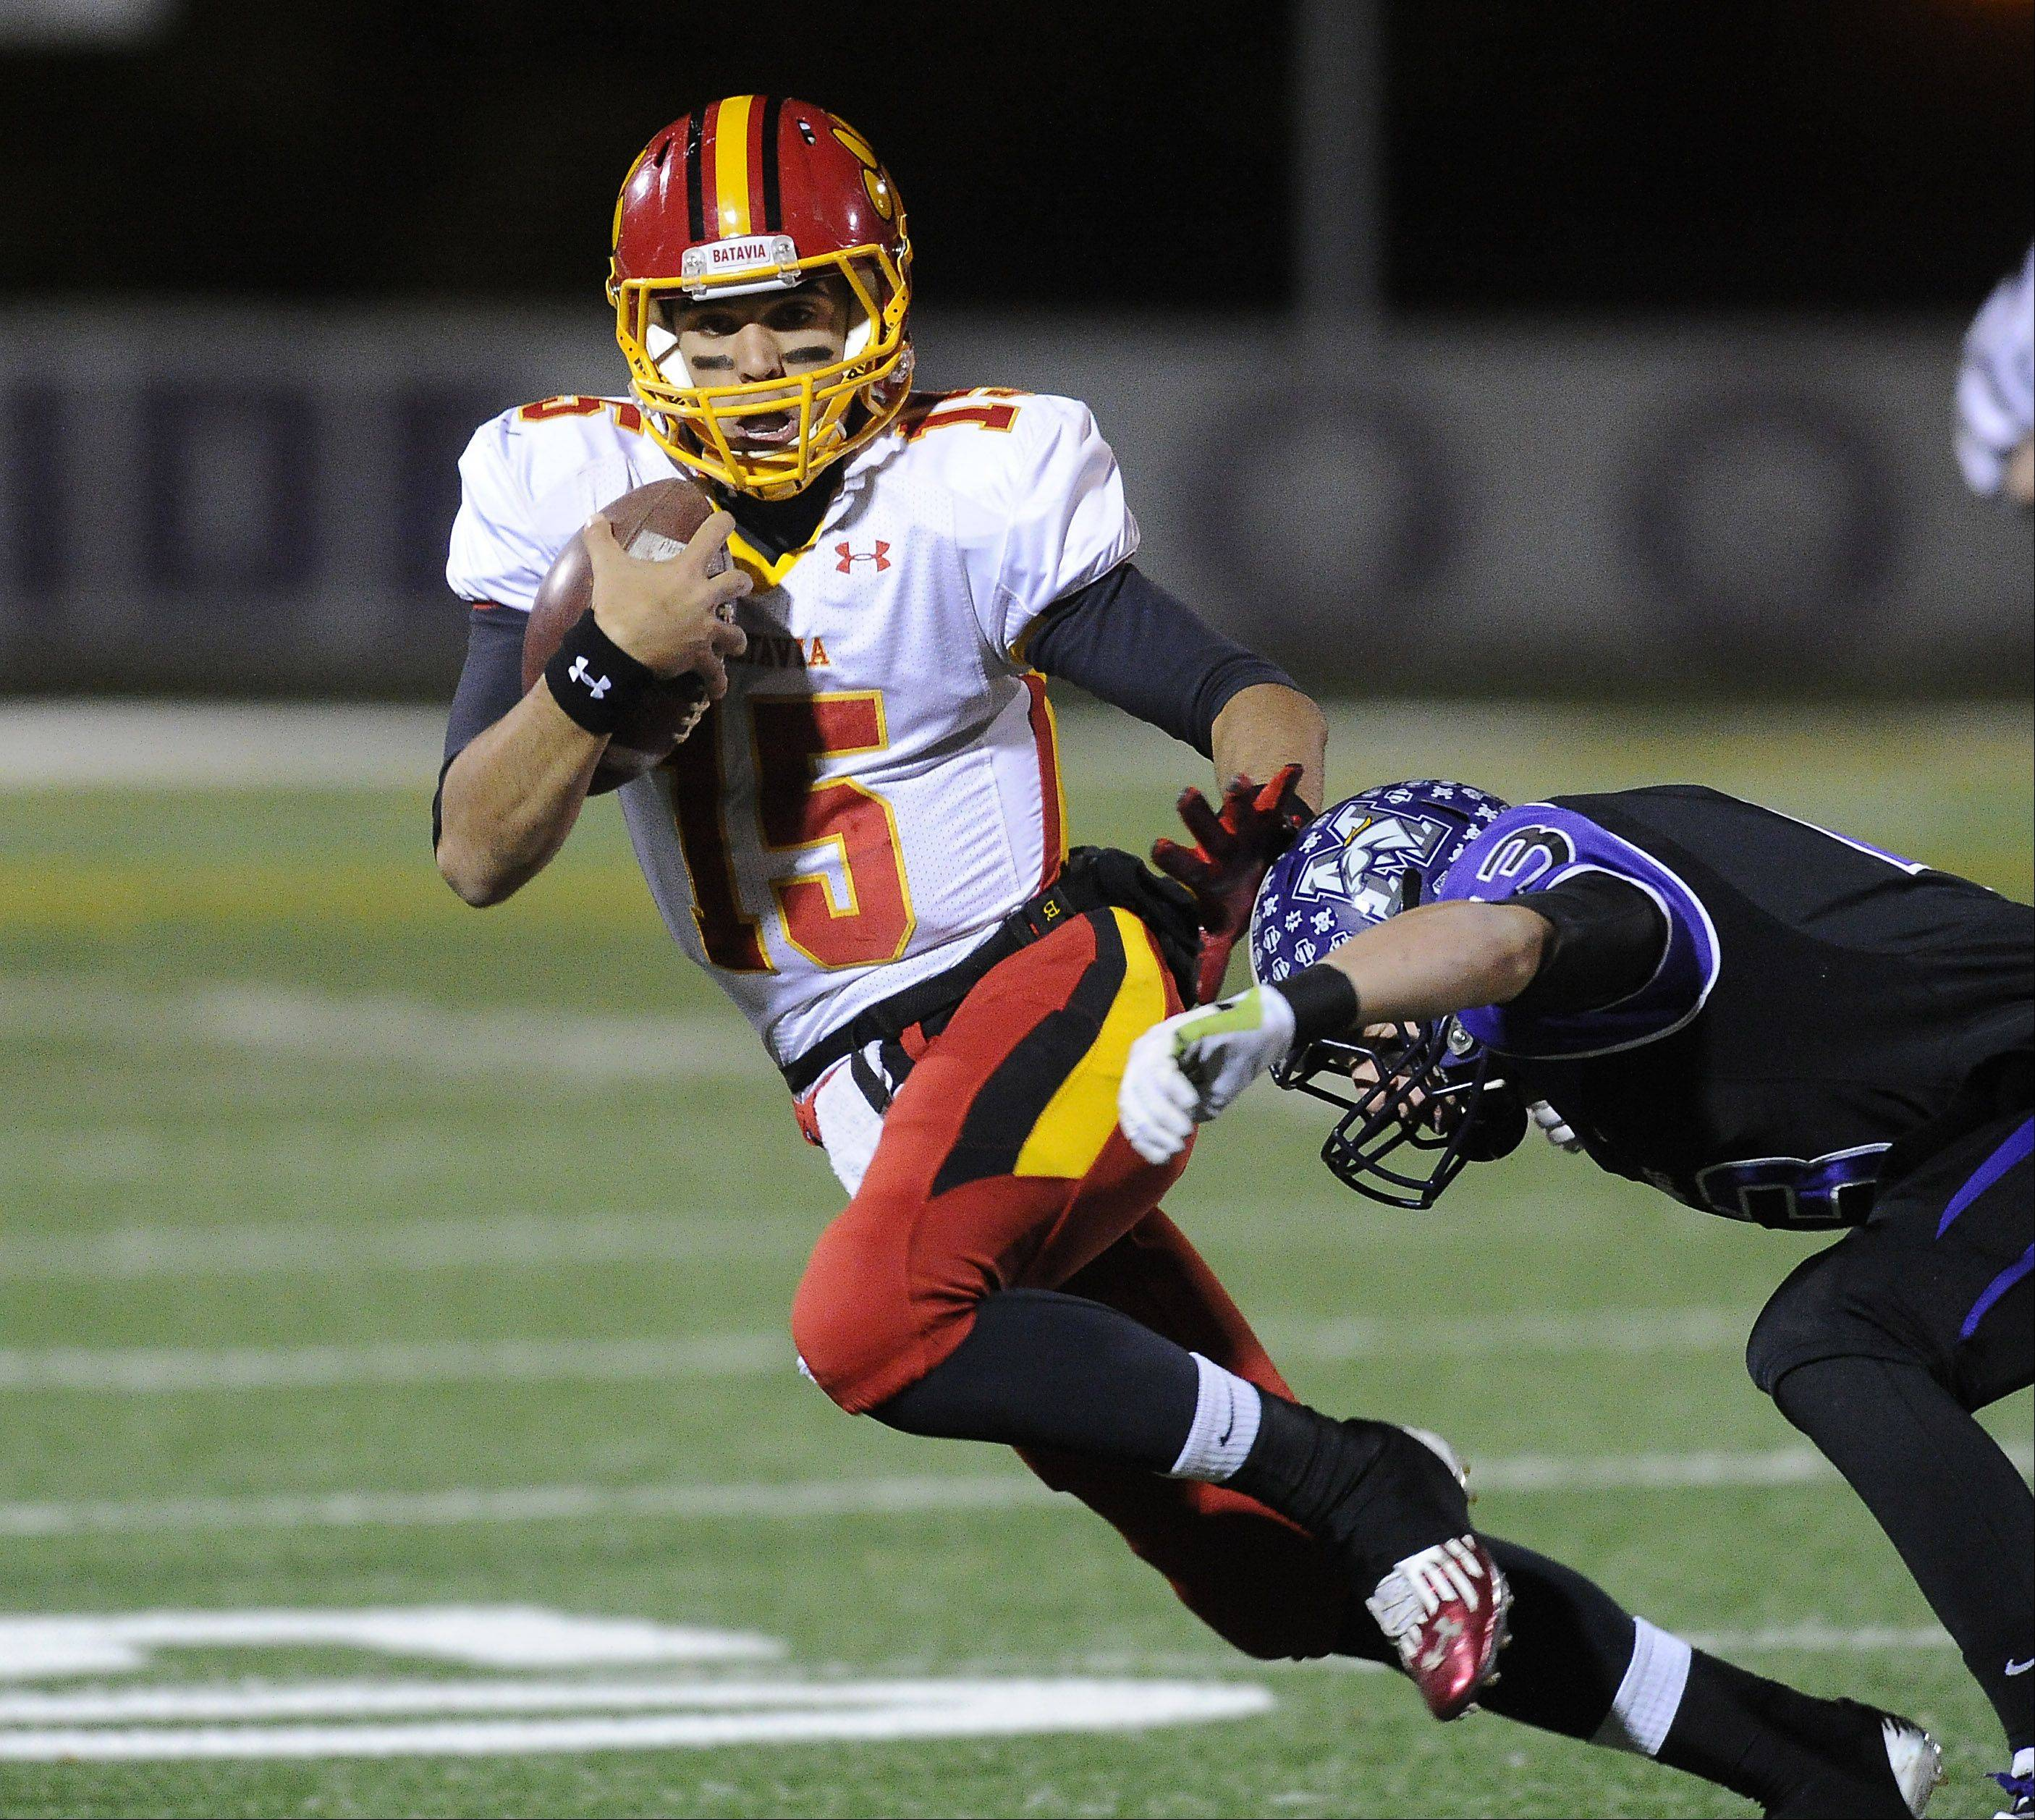 Batavia's quarterback Micah Coffey scrambles for yardage in the first quarter as Rolling Meadows' Peyton Dezonna tries for the tackle on Saturday at Meadows.